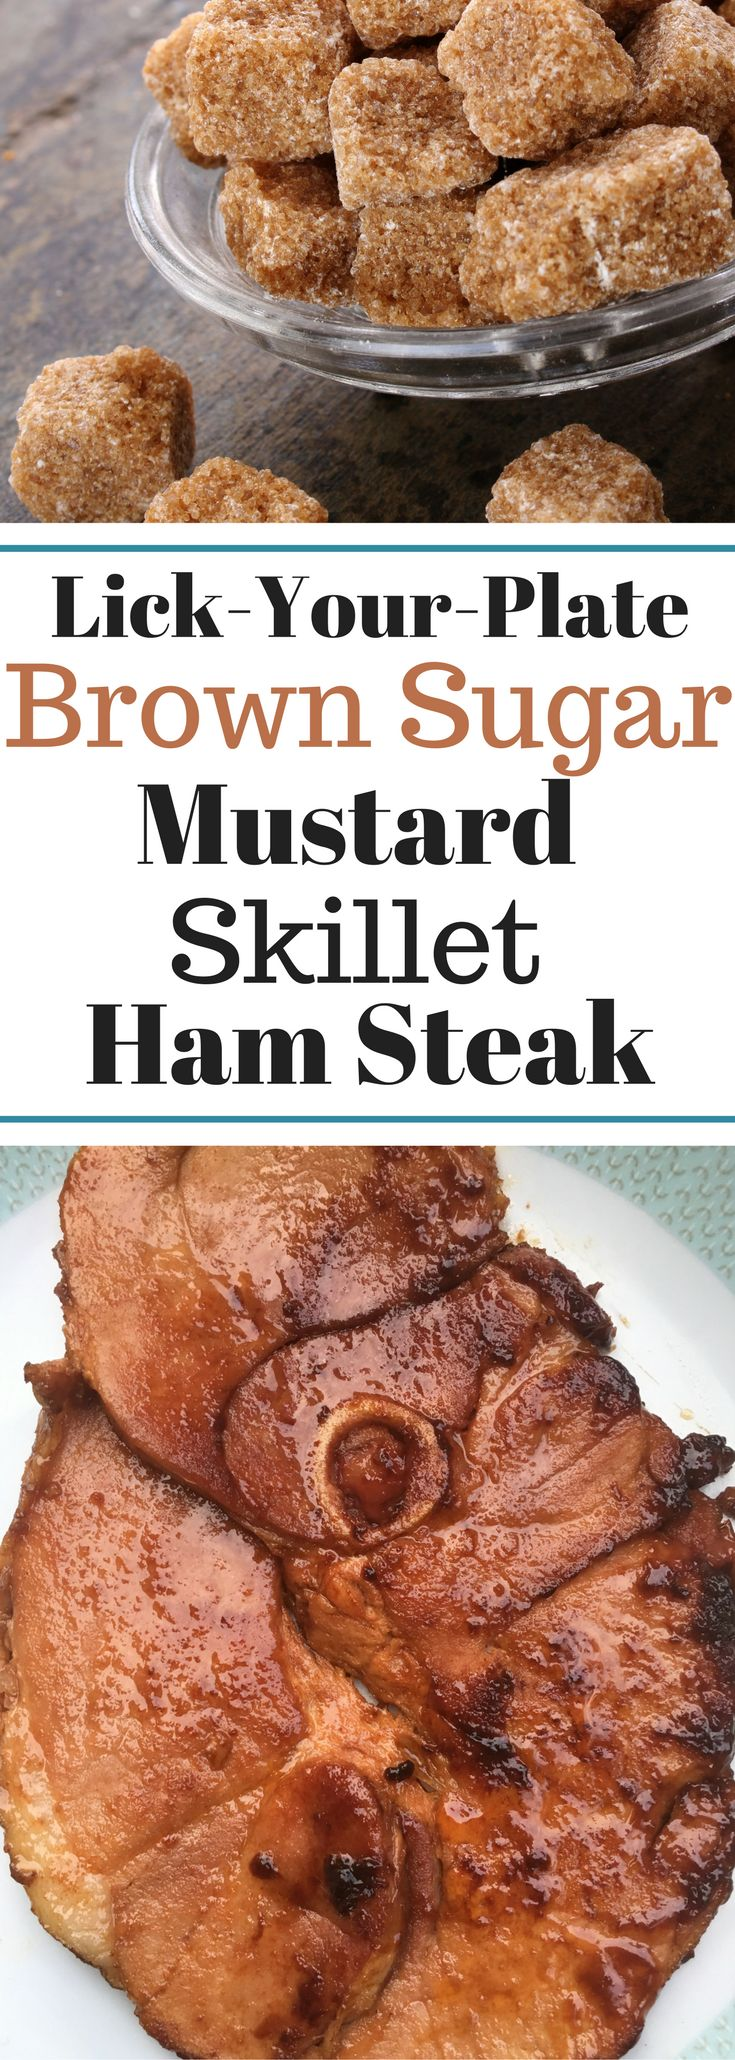 Lick-Your-Plate Clean Brown Sugar Mustard Skillet Ham Steak - IT'S THAT GOOD!